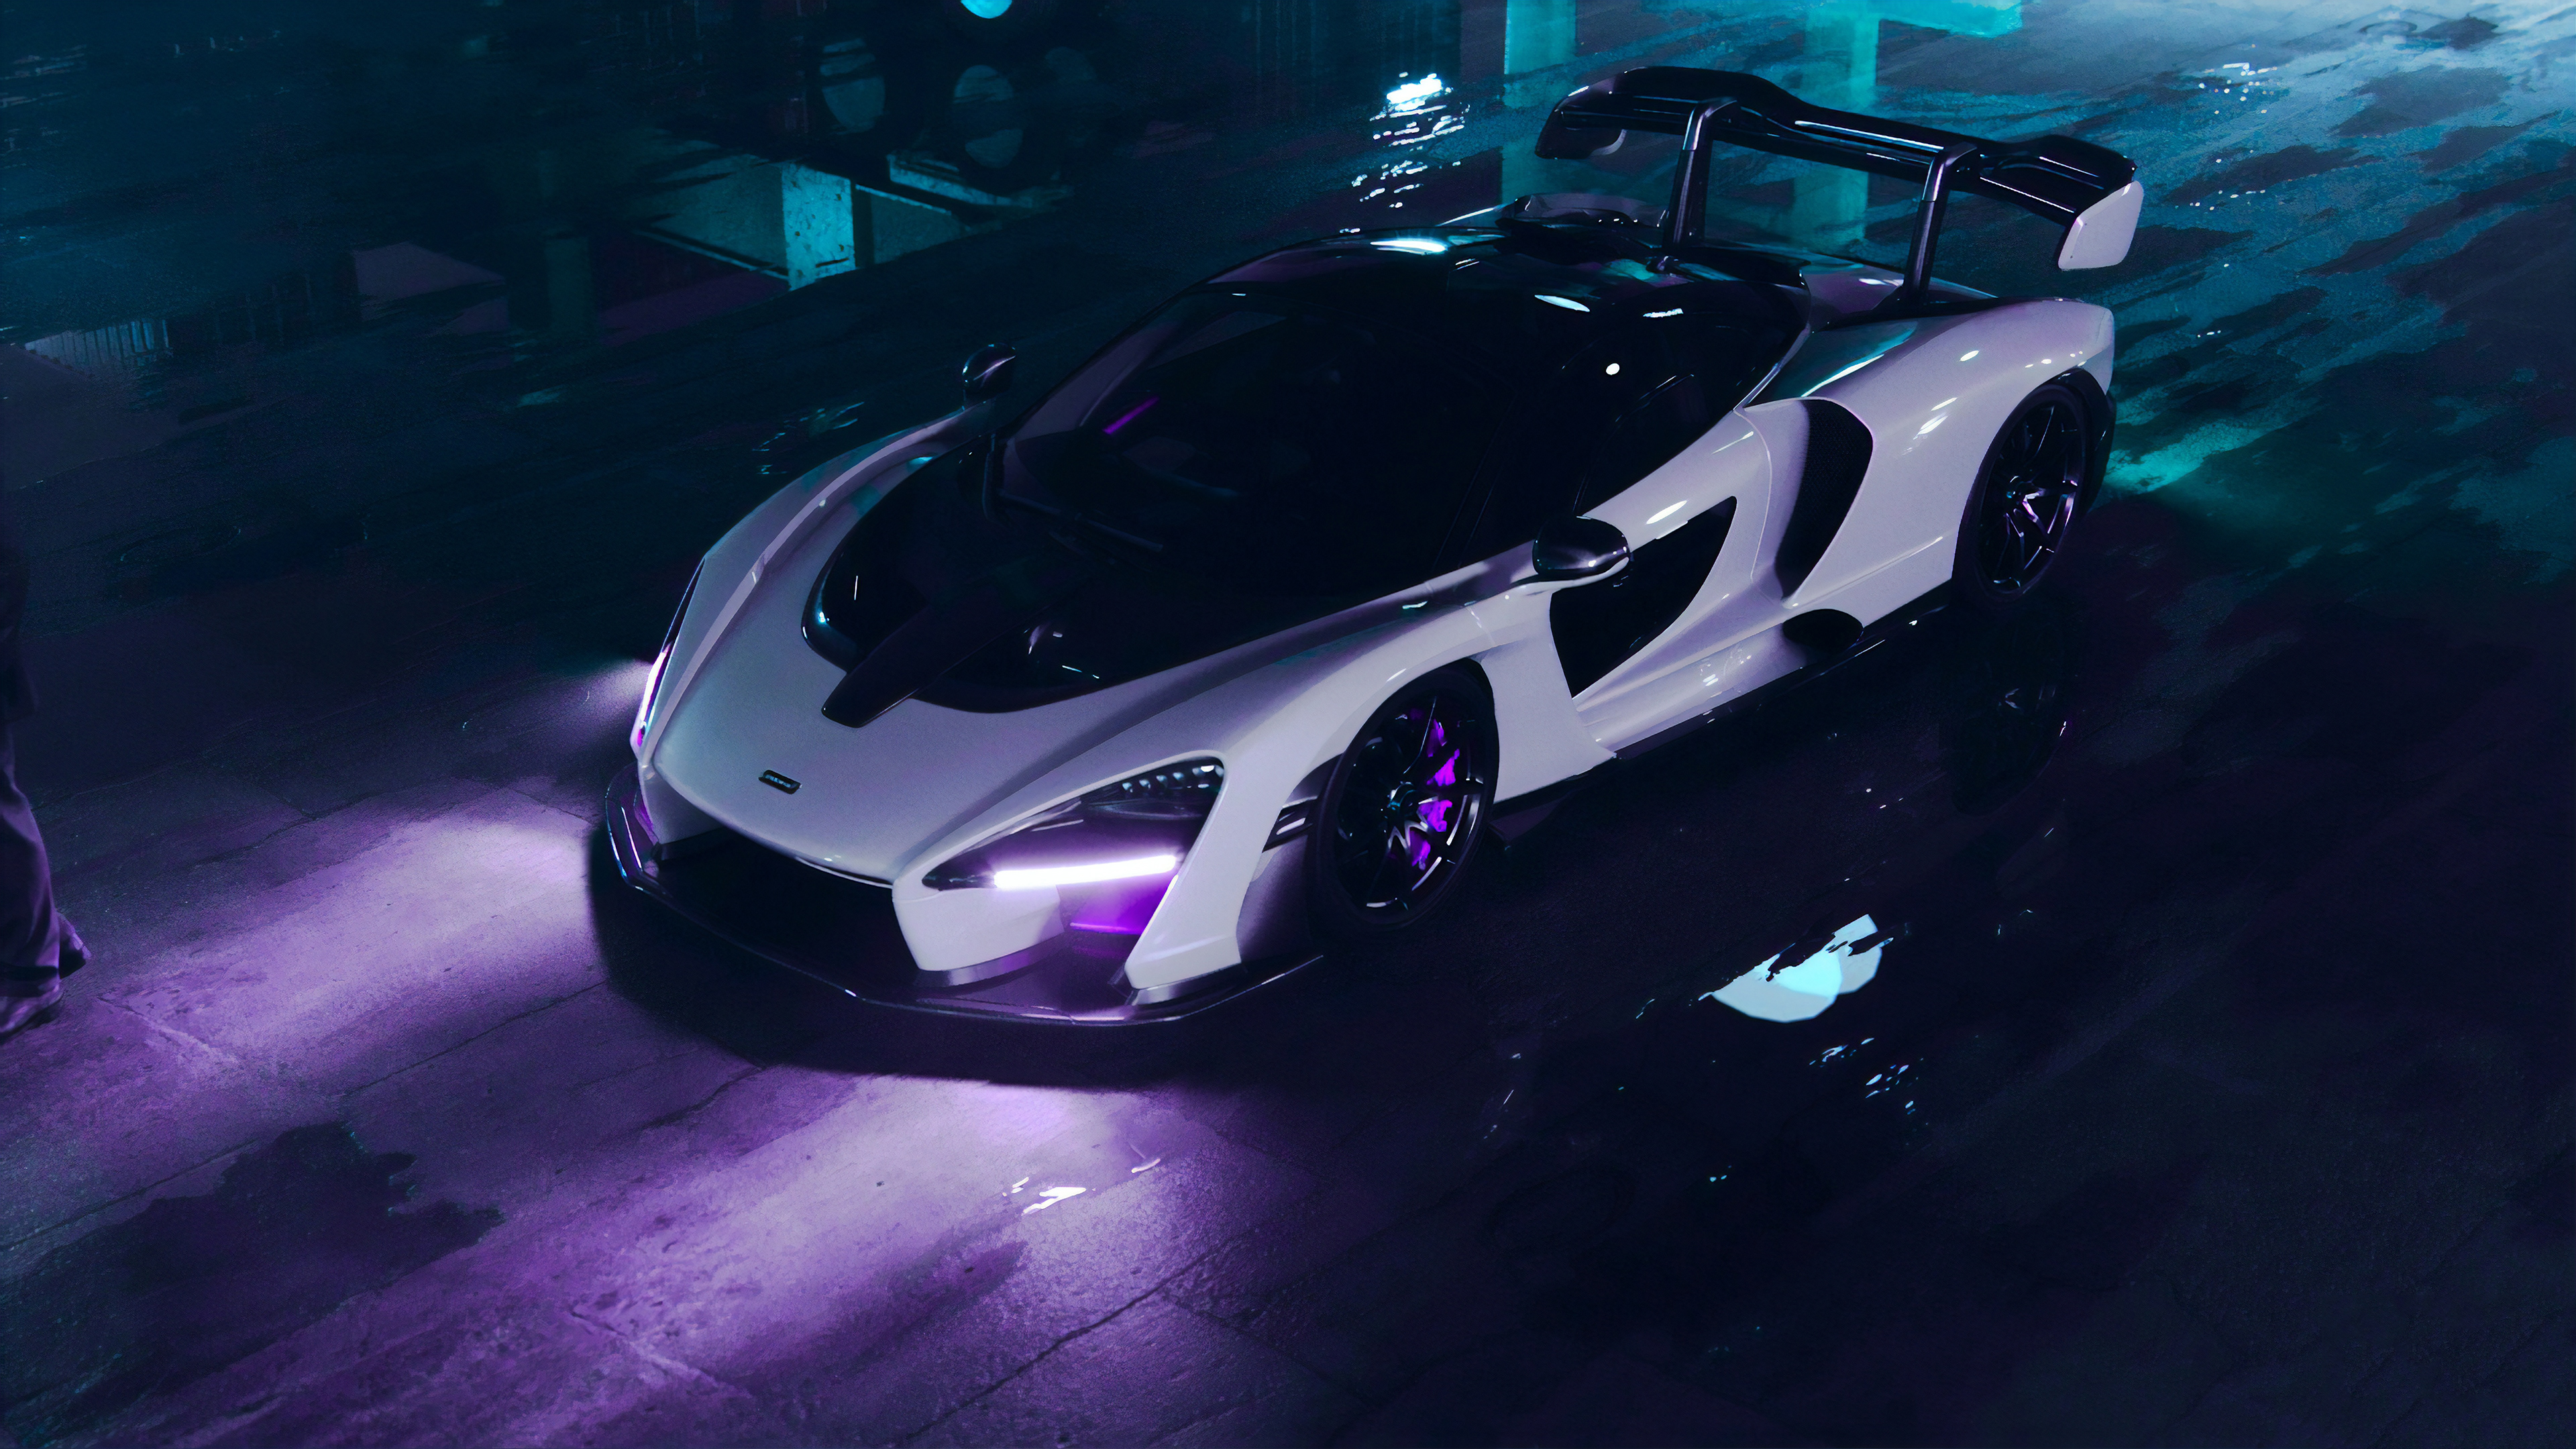 mclaren senna 1570392189 - McLaren Senna - mclaren wallpapers, mclaren senna wallpapers, hd-wallpapers, deviantart wallpapers, cars wallpapers, 4k-wallpapers, 2019 cars wallpapers